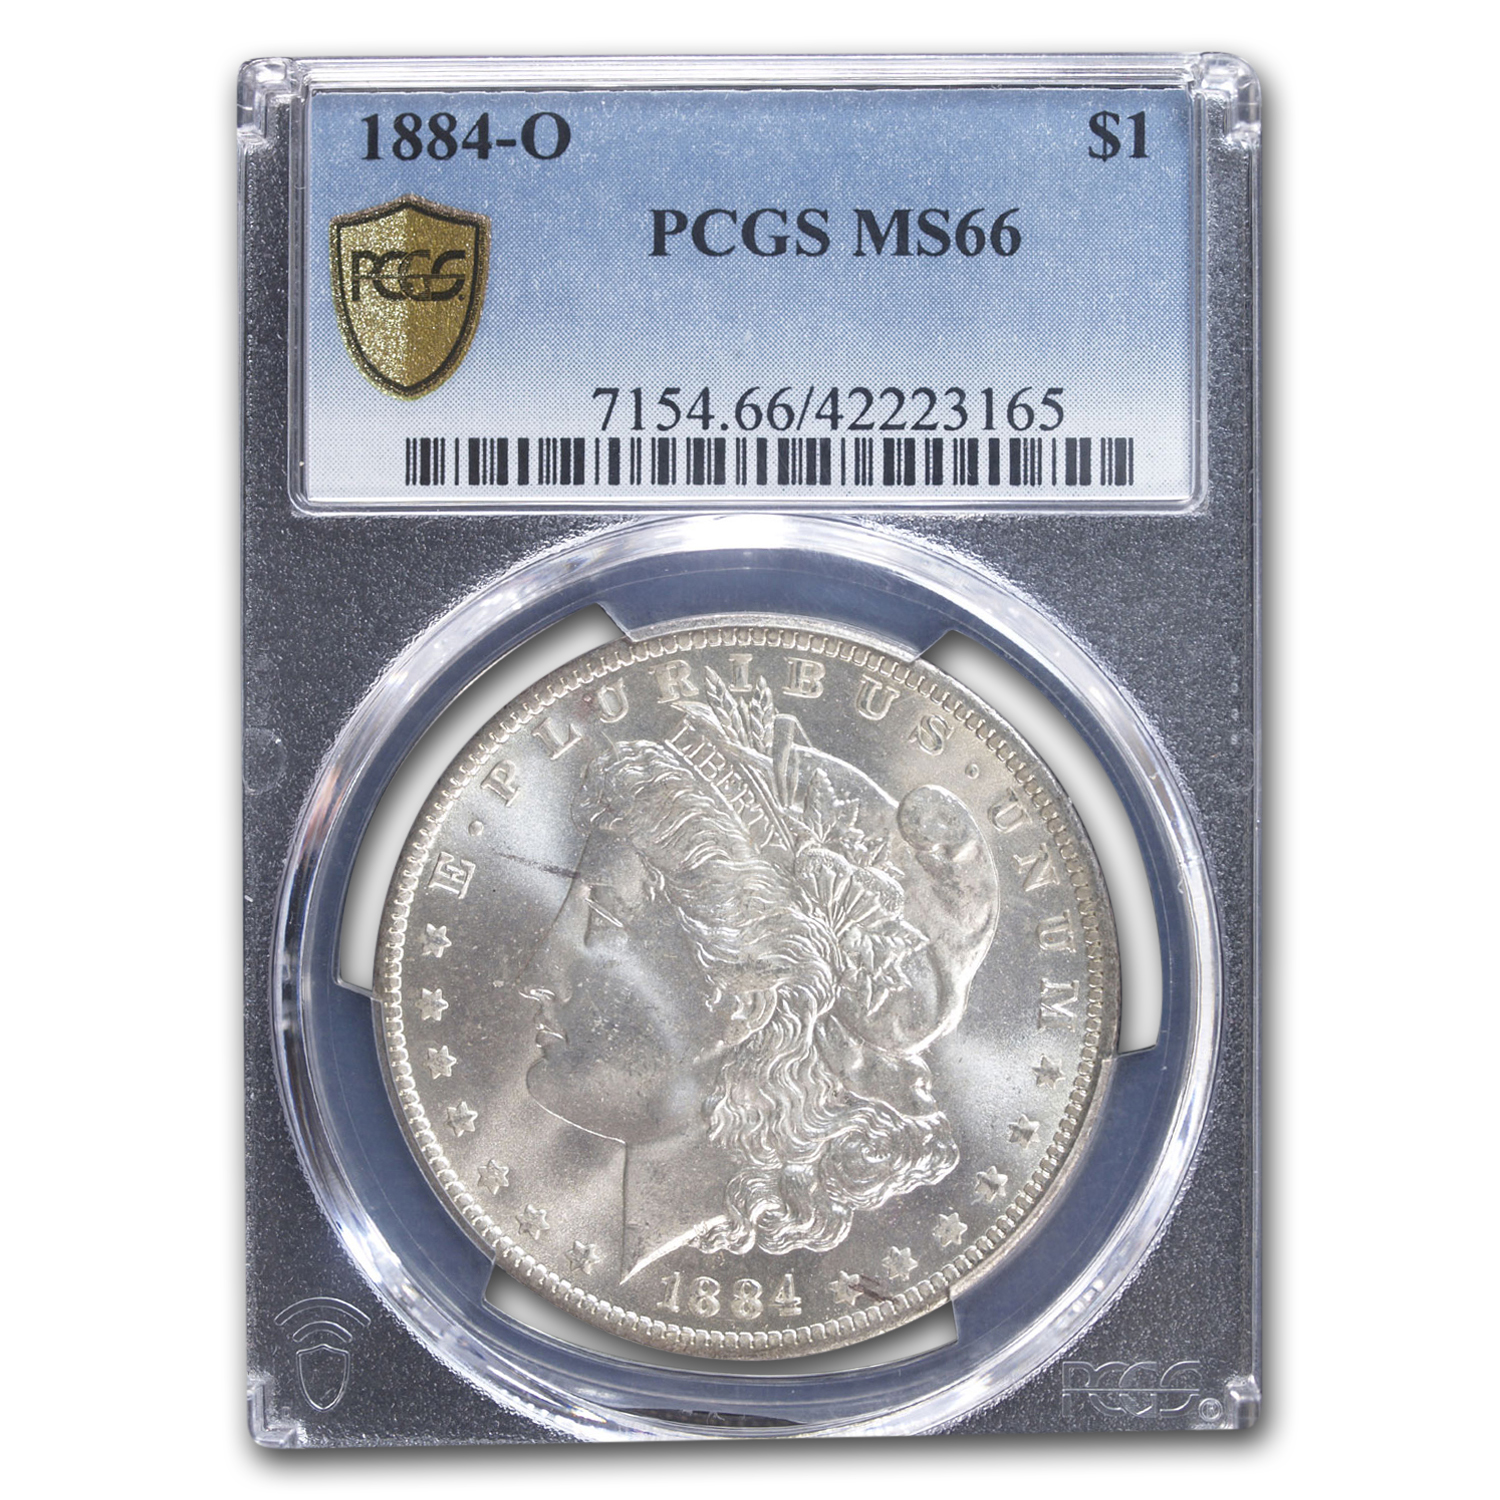 1884-O Morgan Dollar - MS-66 PCGS